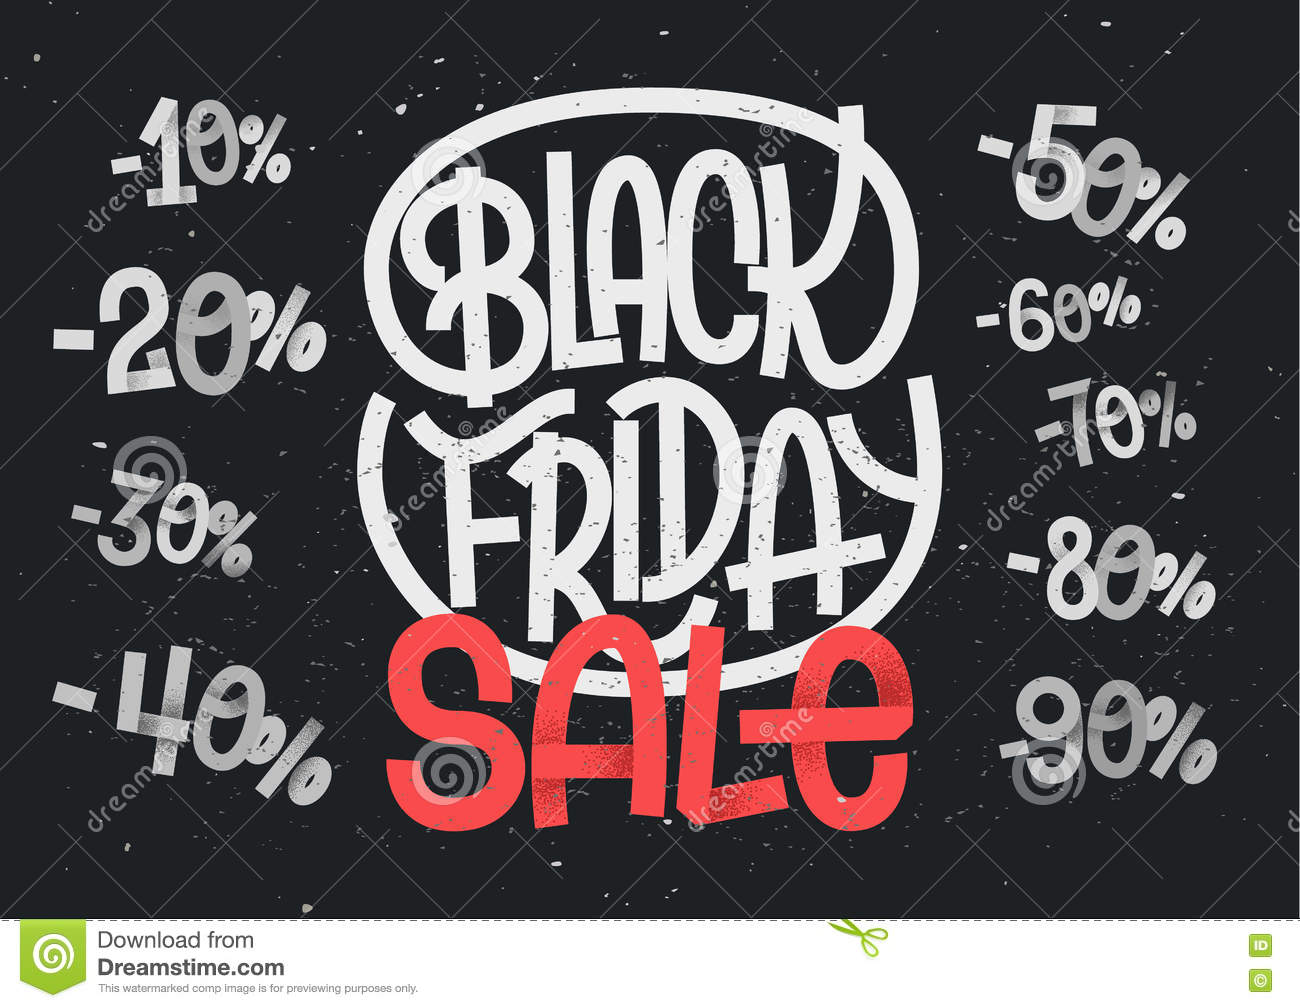 Black Friday lettering with percentage numbers for sales